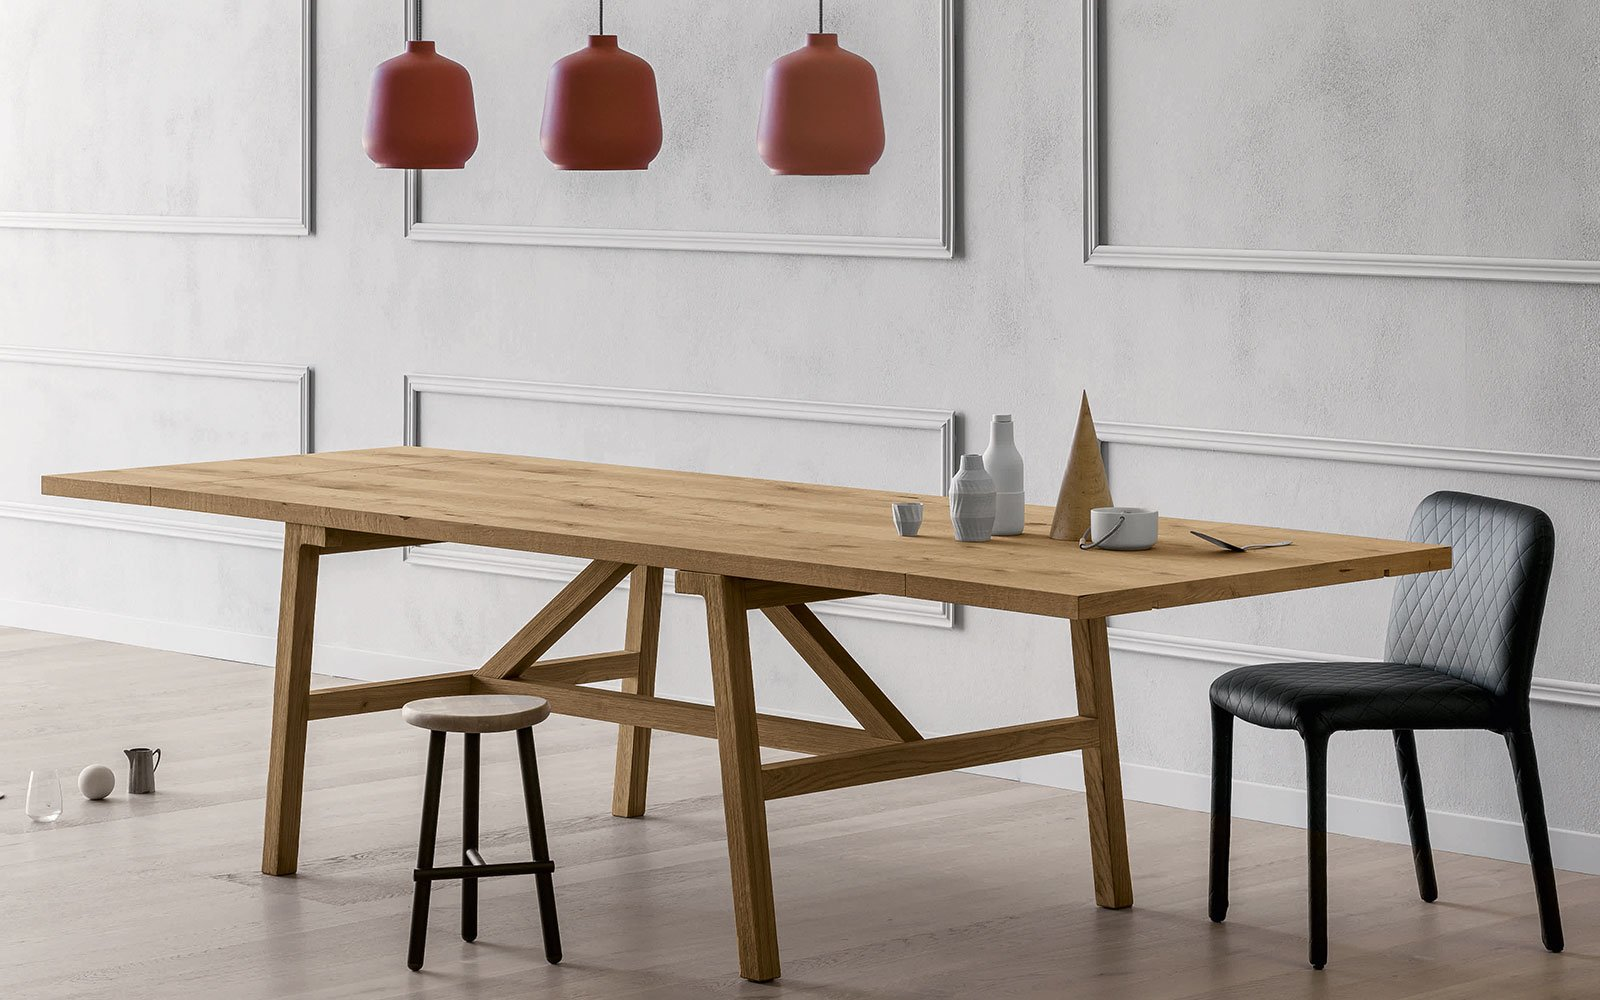 FRATTIONO contemporary wooden dining table miniforms